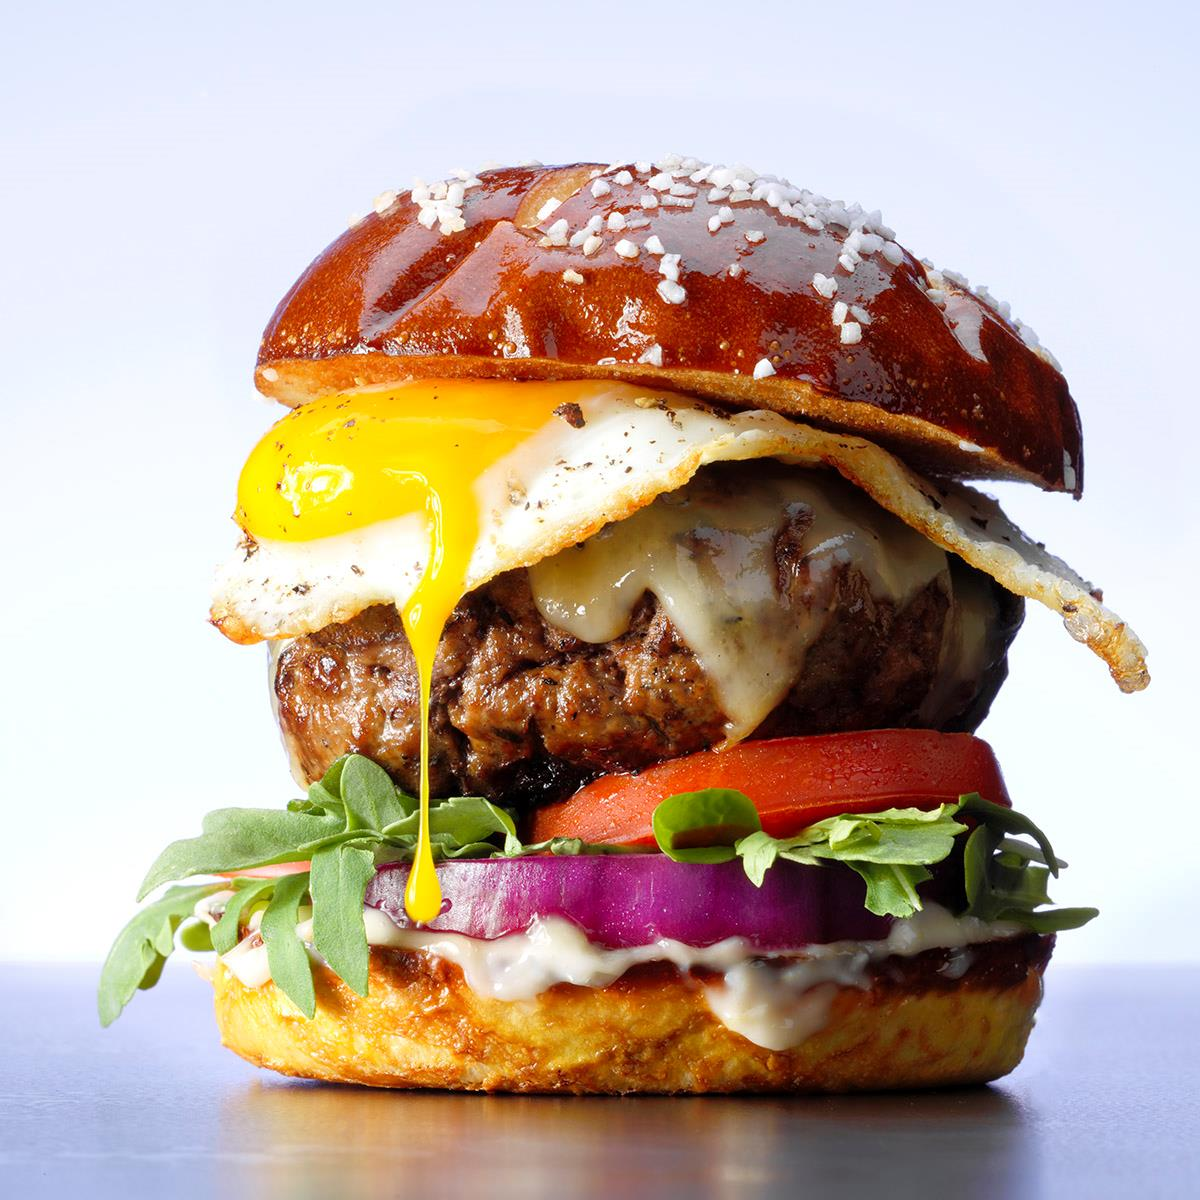 Gruyere and Egg Burgers Recipe: How to Make It | Taste of Home